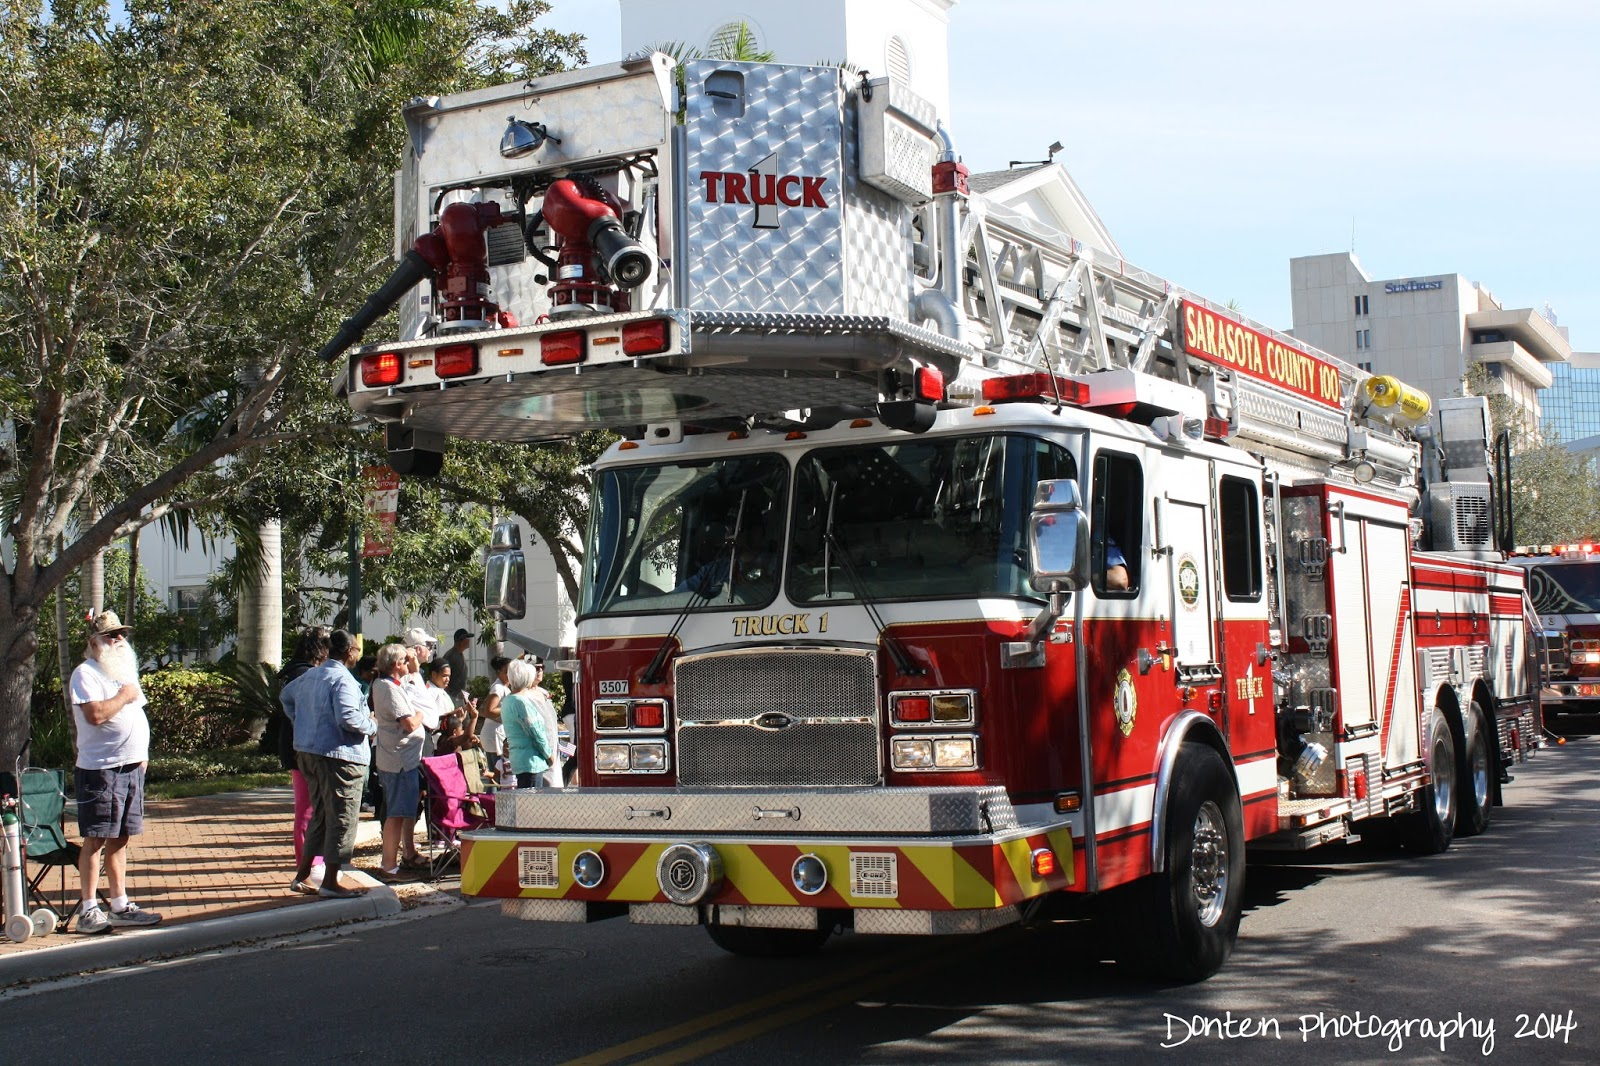 sarasota county fire department  truck 1  donten photography   boots and badges  2014  rh   publicsafetypicsbydonentphotography blogspot